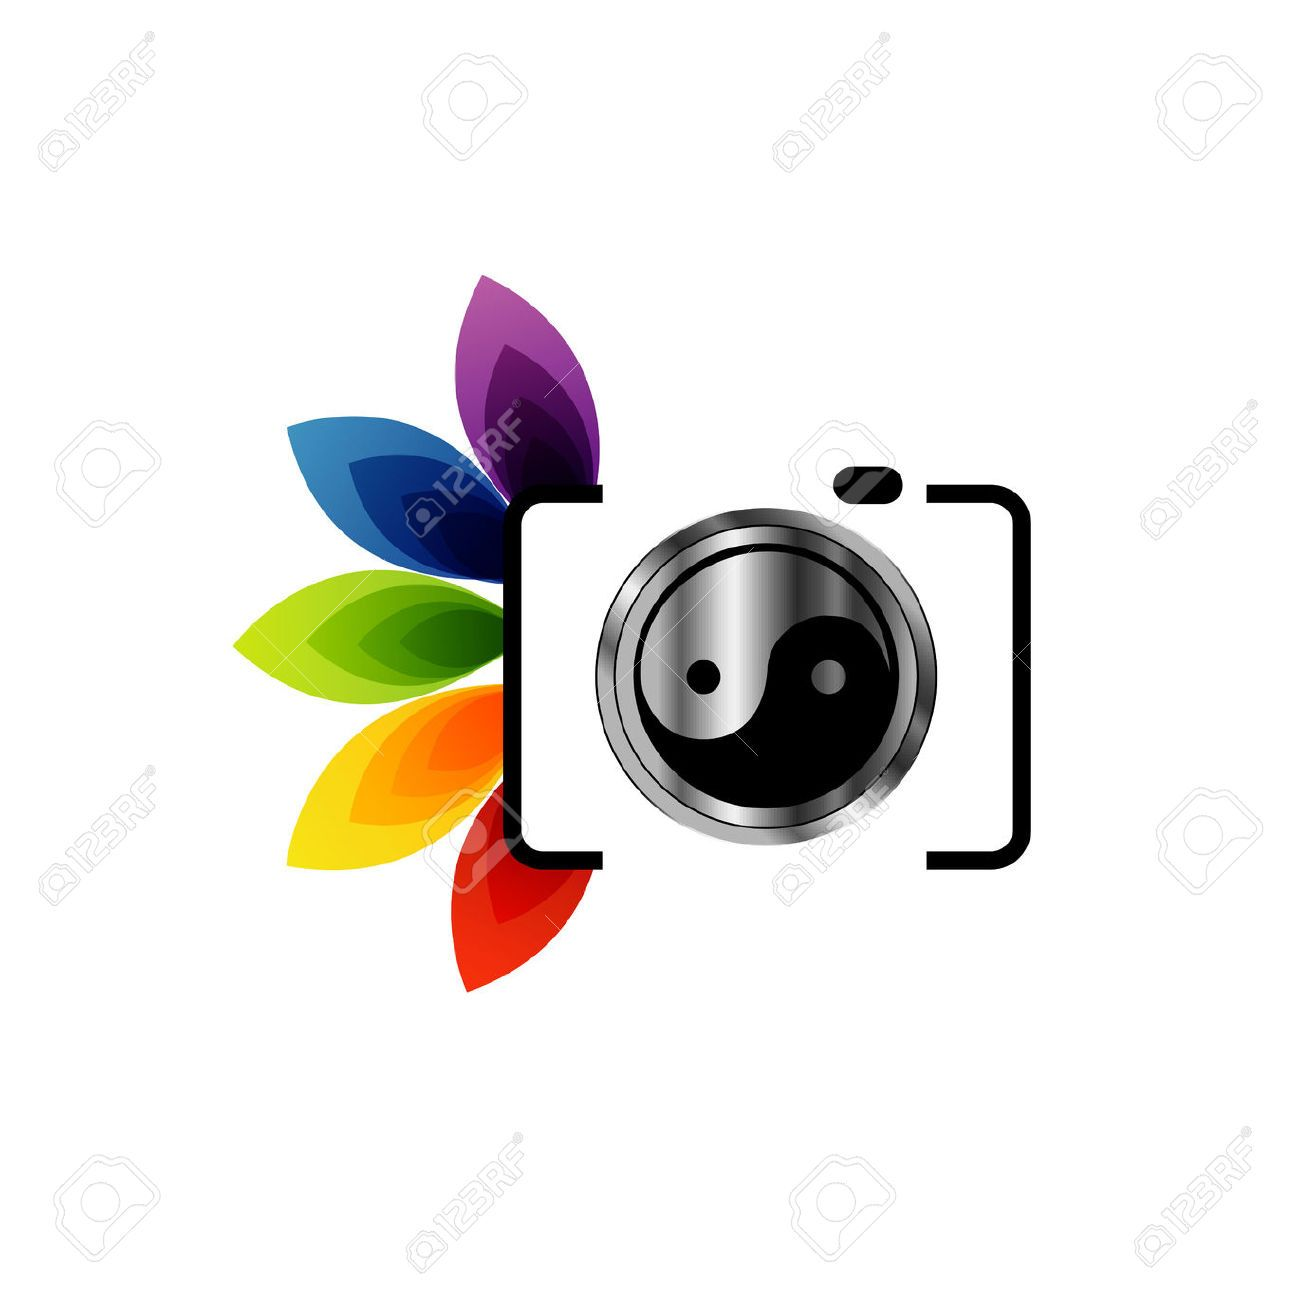 Logo Design Software Free Download Full Version Free Camera Logo Images Stock Pictures Royalty Free Camera